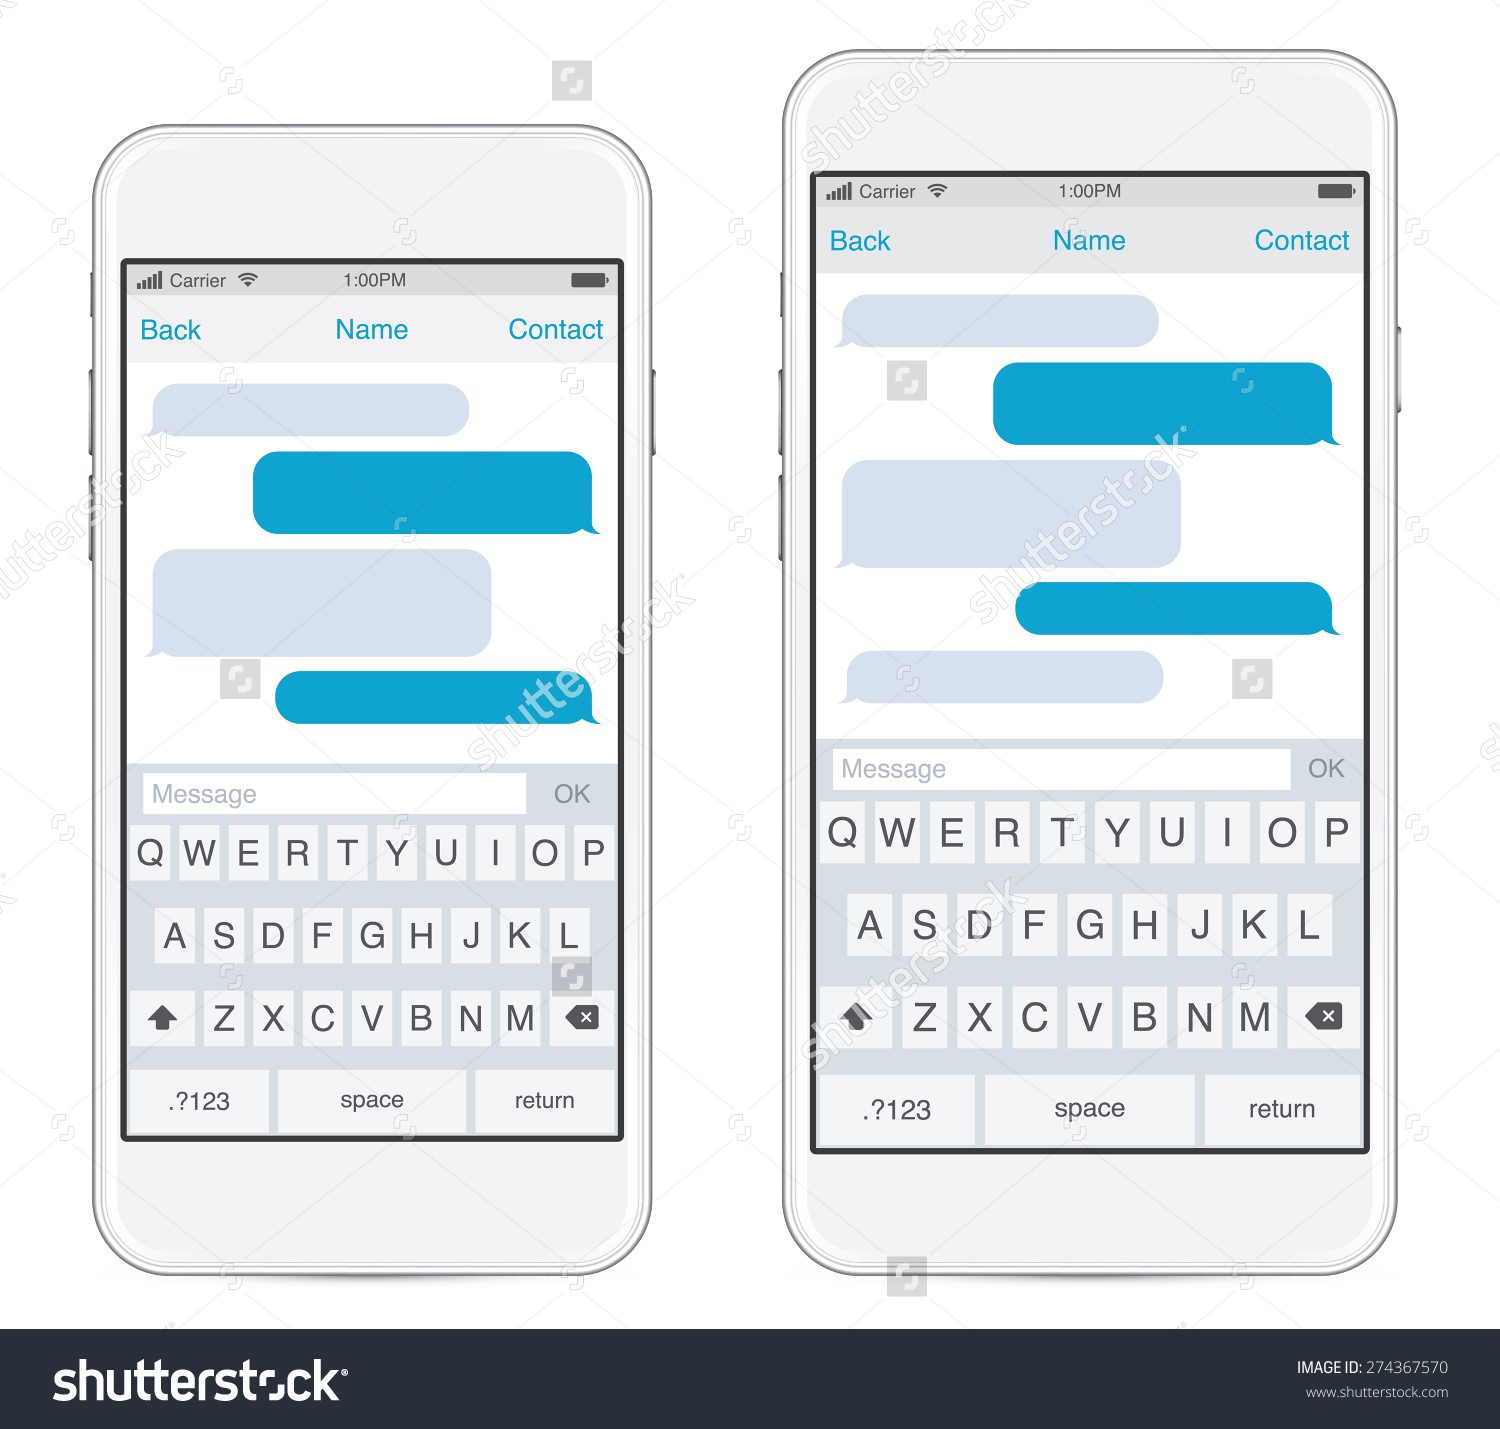 Iphone message clipart svg royalty free stock Iphone text bubble clipart - ClipartFest svg royalty free stock